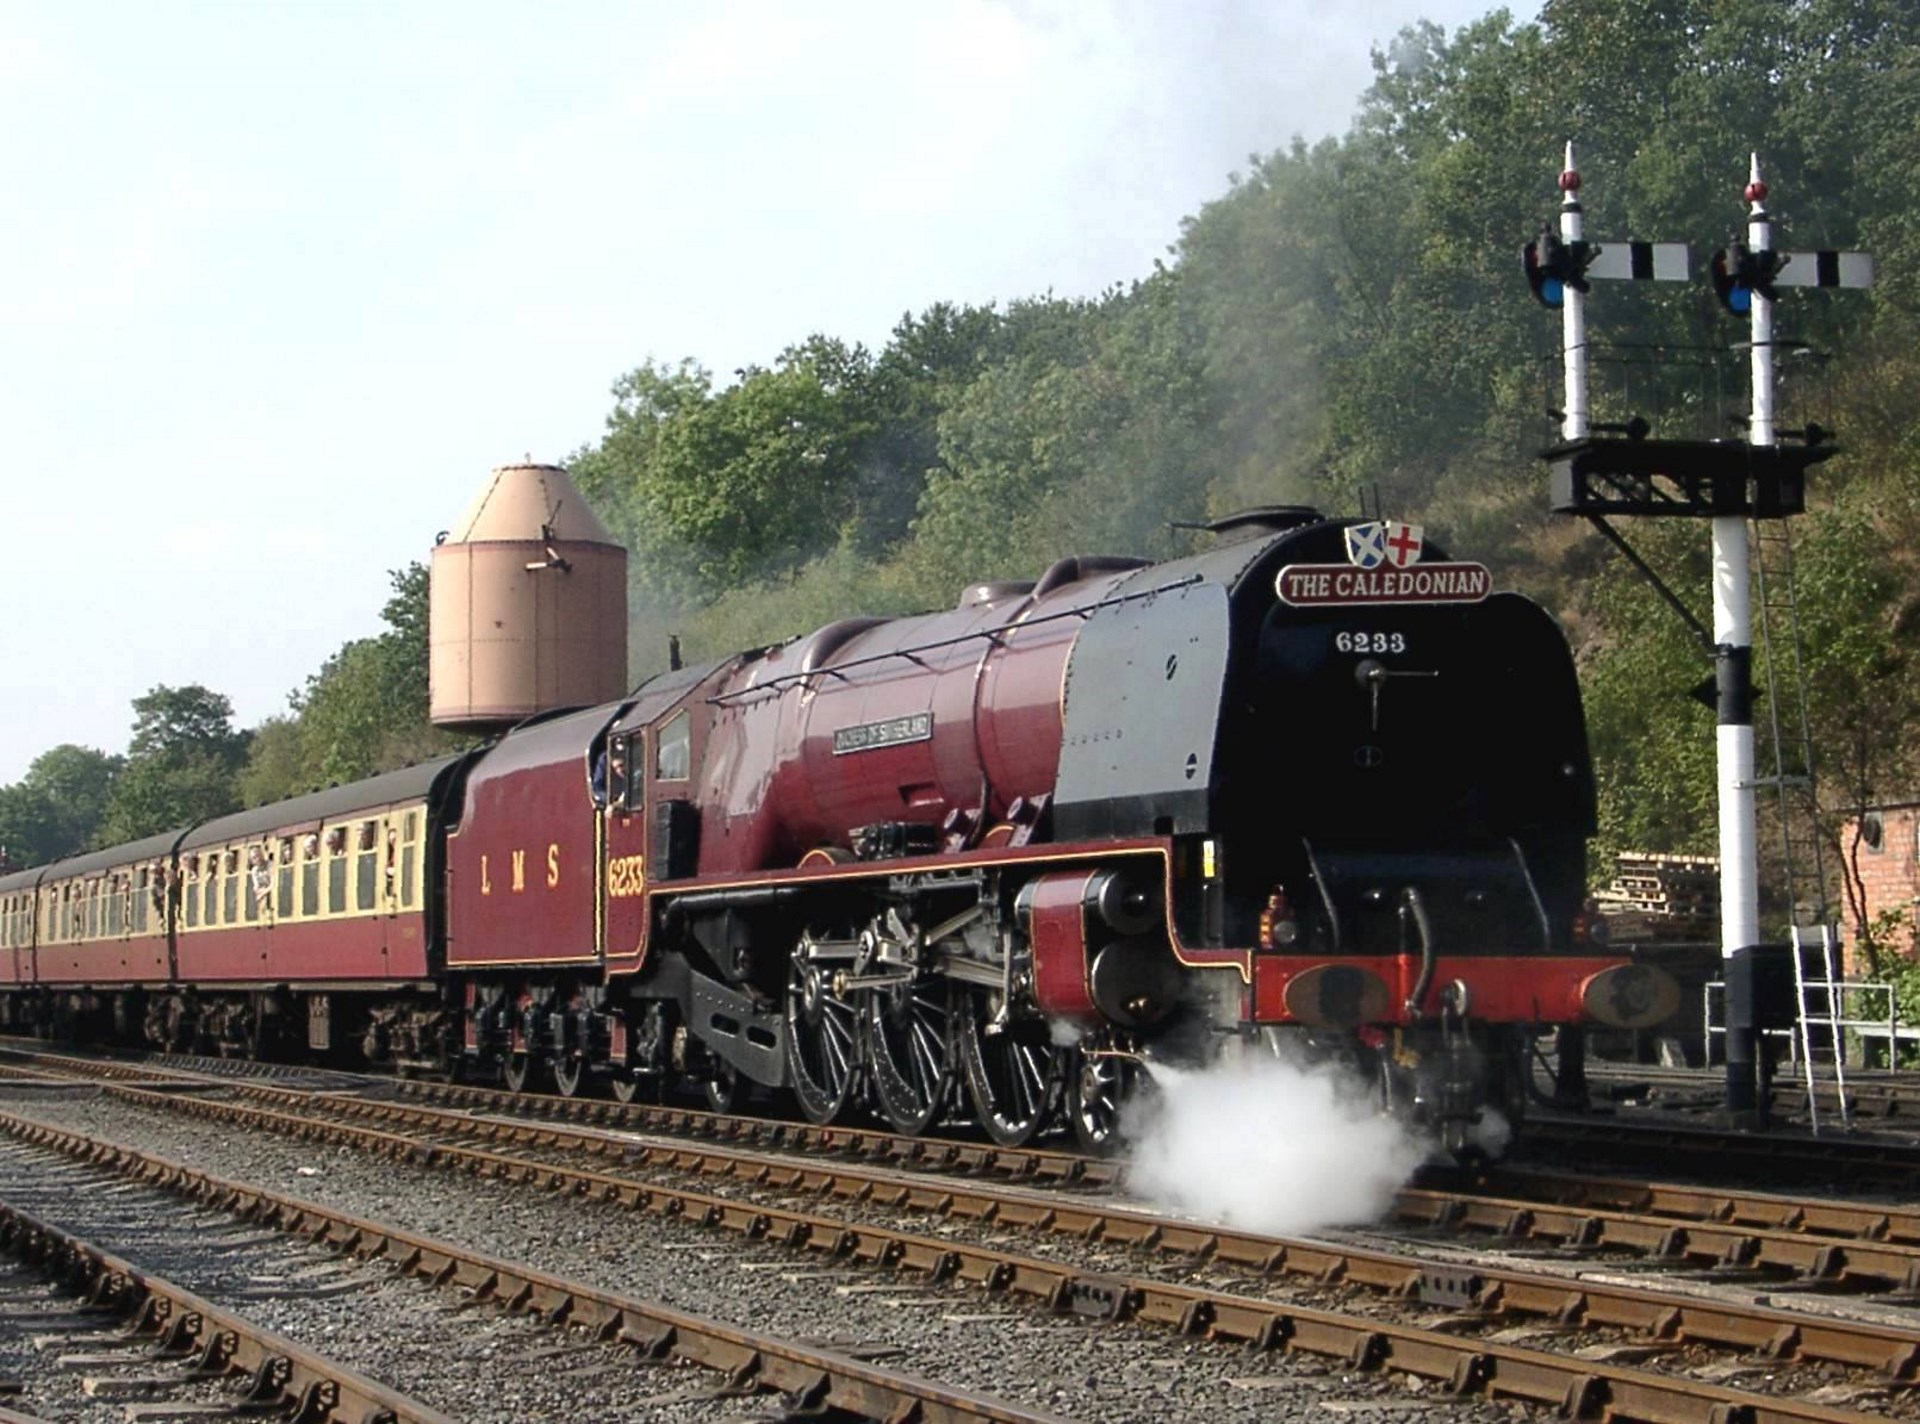 Medium T 34 Tank furthermore 56 Ge Transportations Optimization Solutions also Severn Valley Railway Announce Their First Guest For 2018 Autumn Steam Gala further Ireland 1992 in addition Watch. on locomotive repair